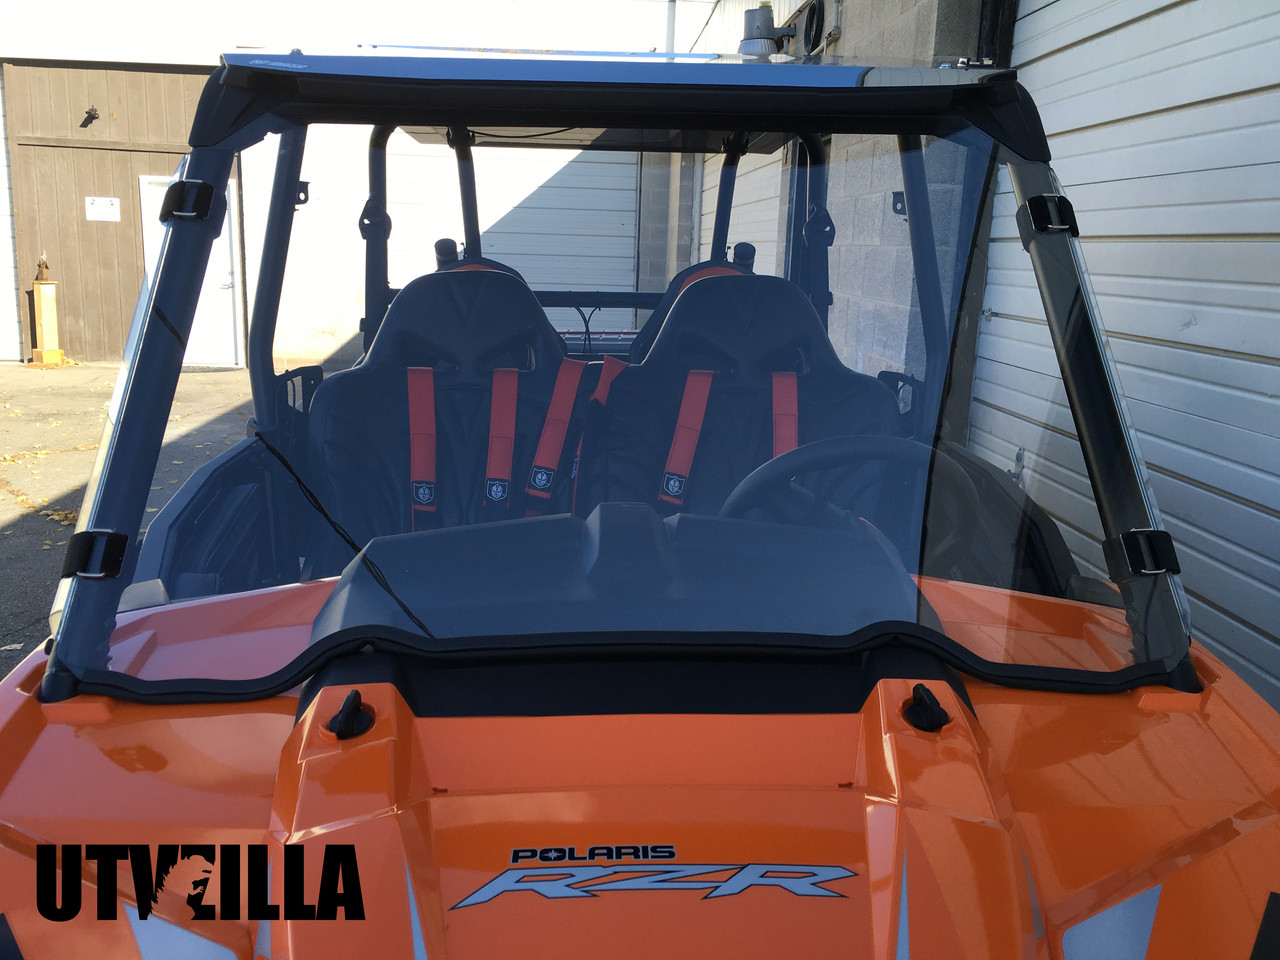 Full Polycarbonate Windshield with Quick Straps for RZR 900, 1000, TURBO  (upgrade options)